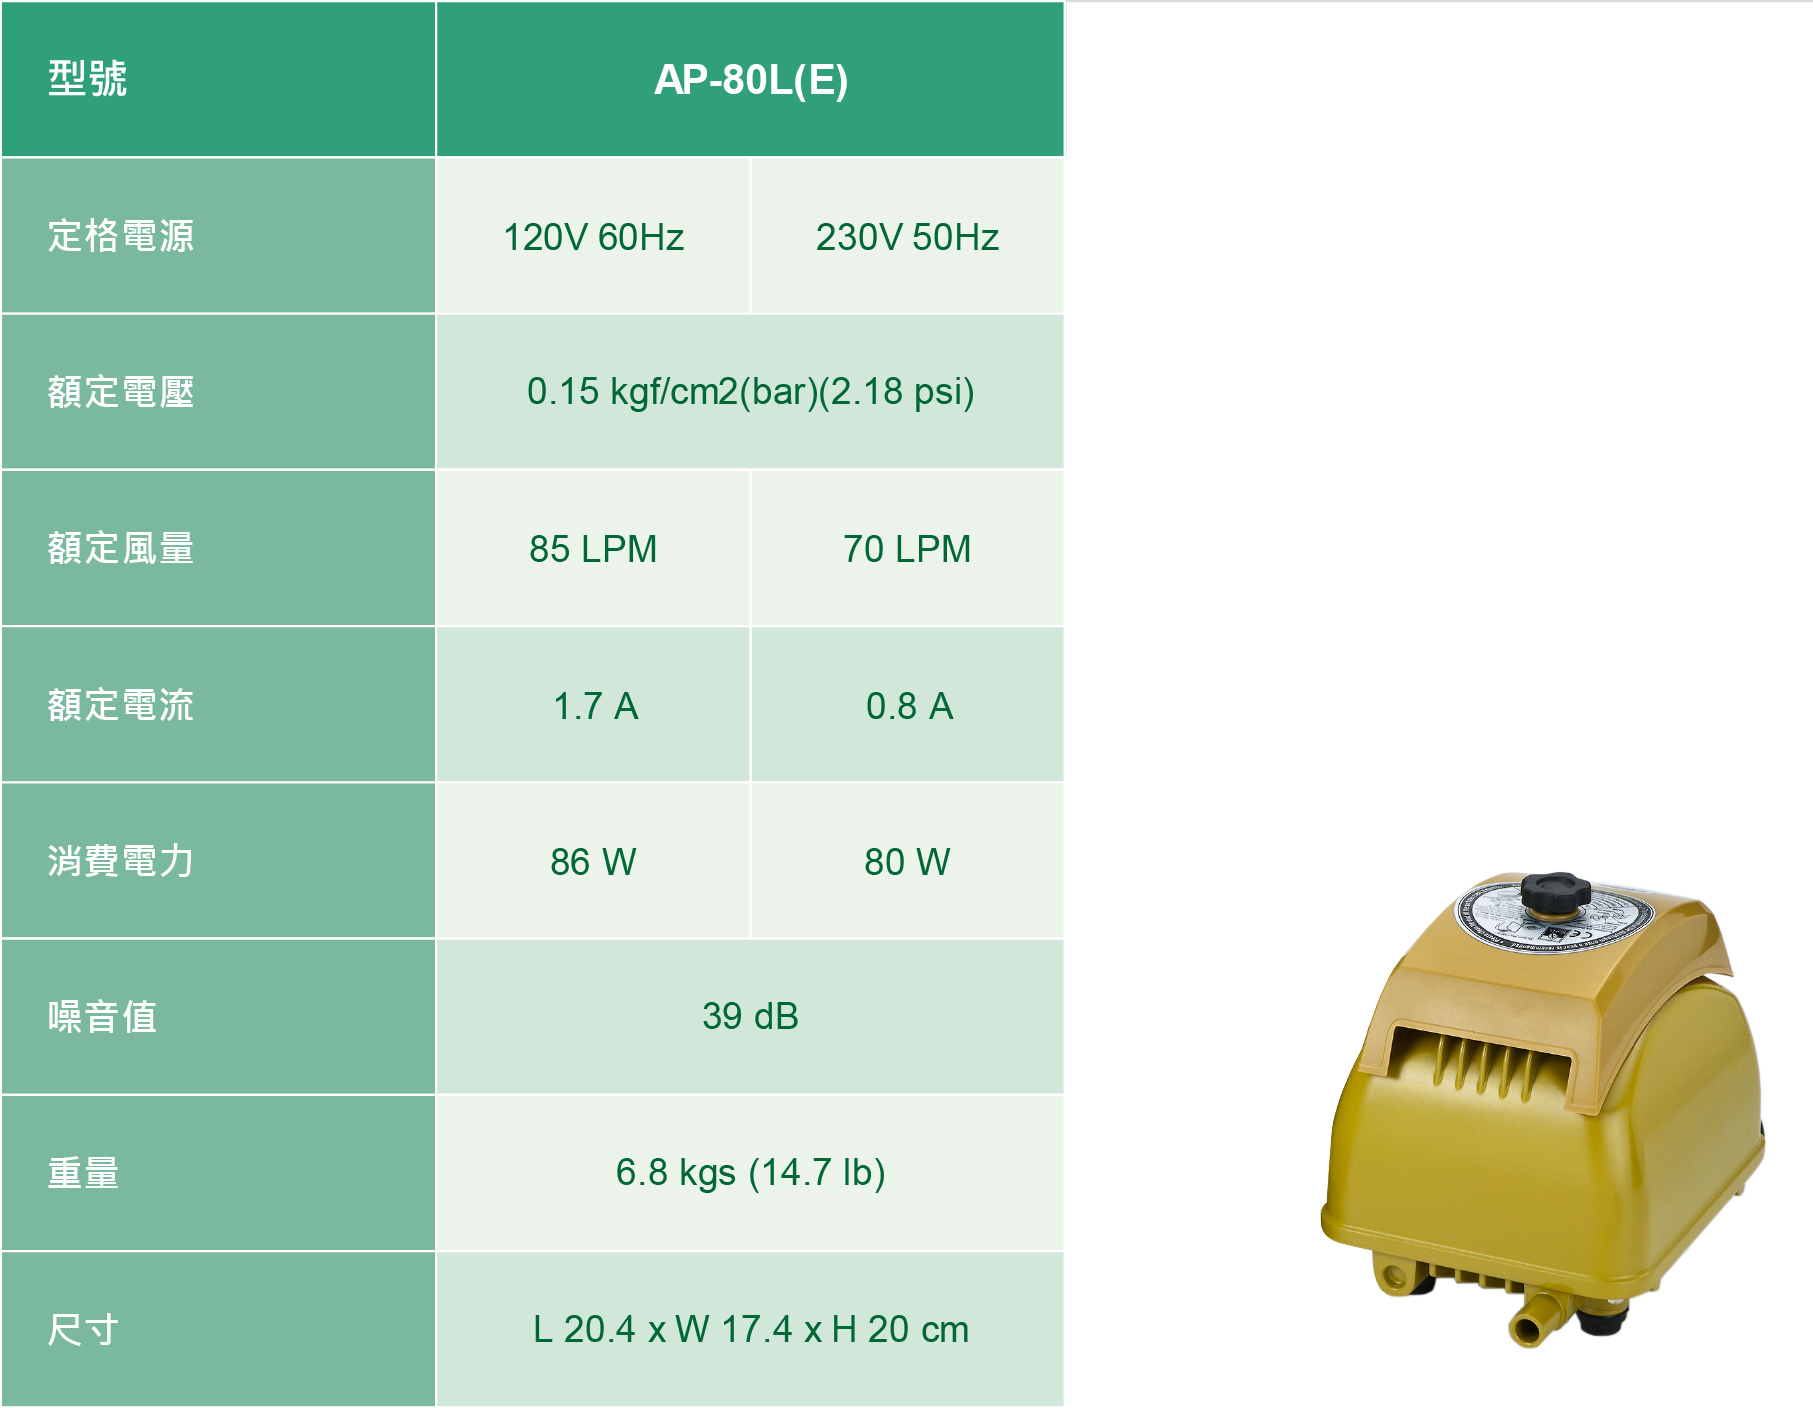 Linear Air Pumps AP-80L(E) Performance